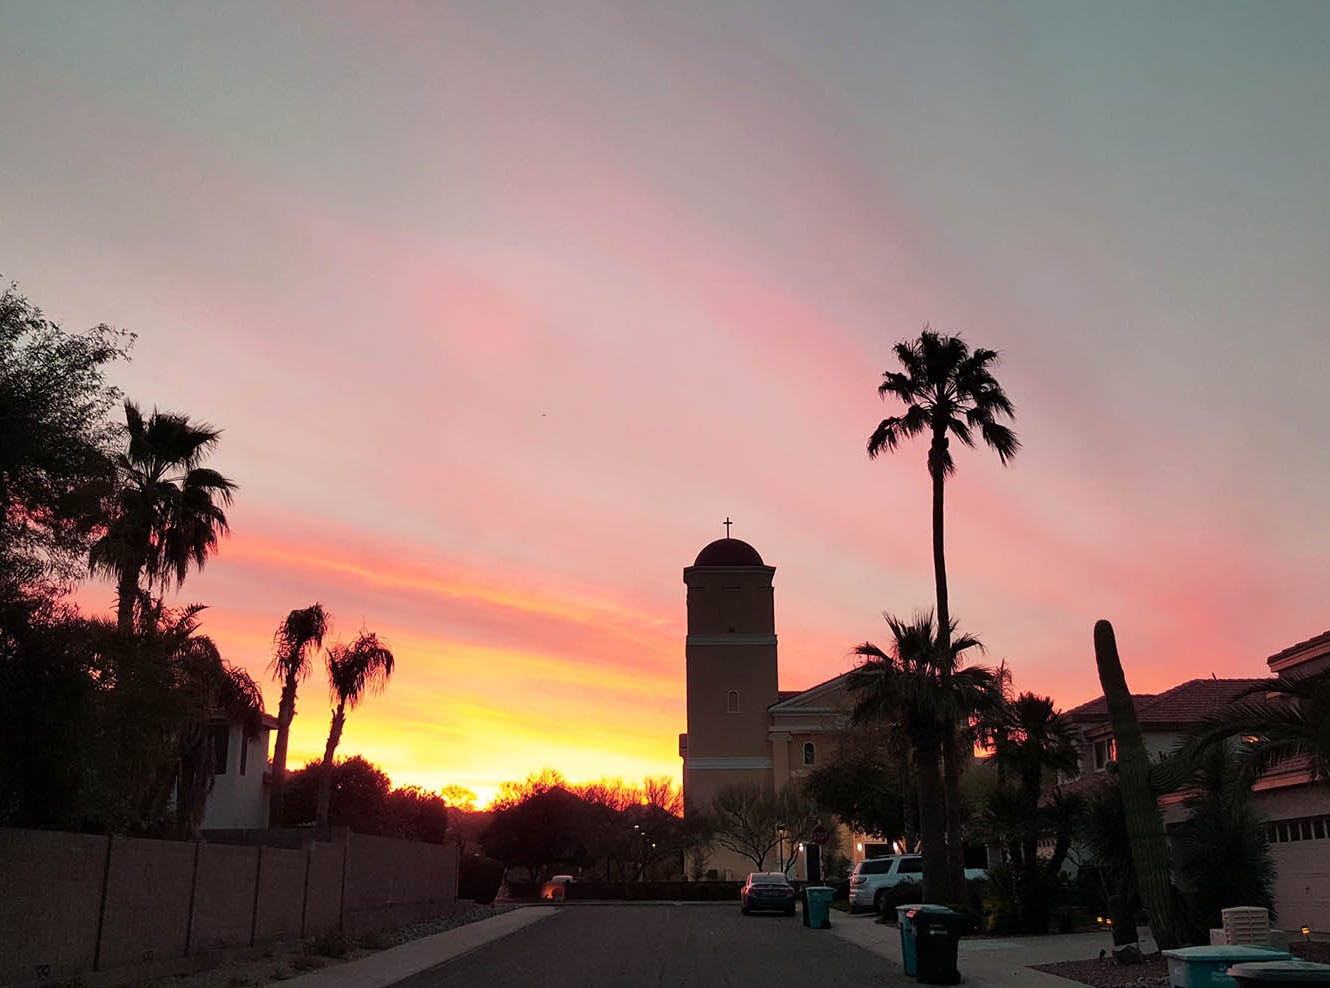 Sunrise over St. Bernadette's Church in Scottsdale.